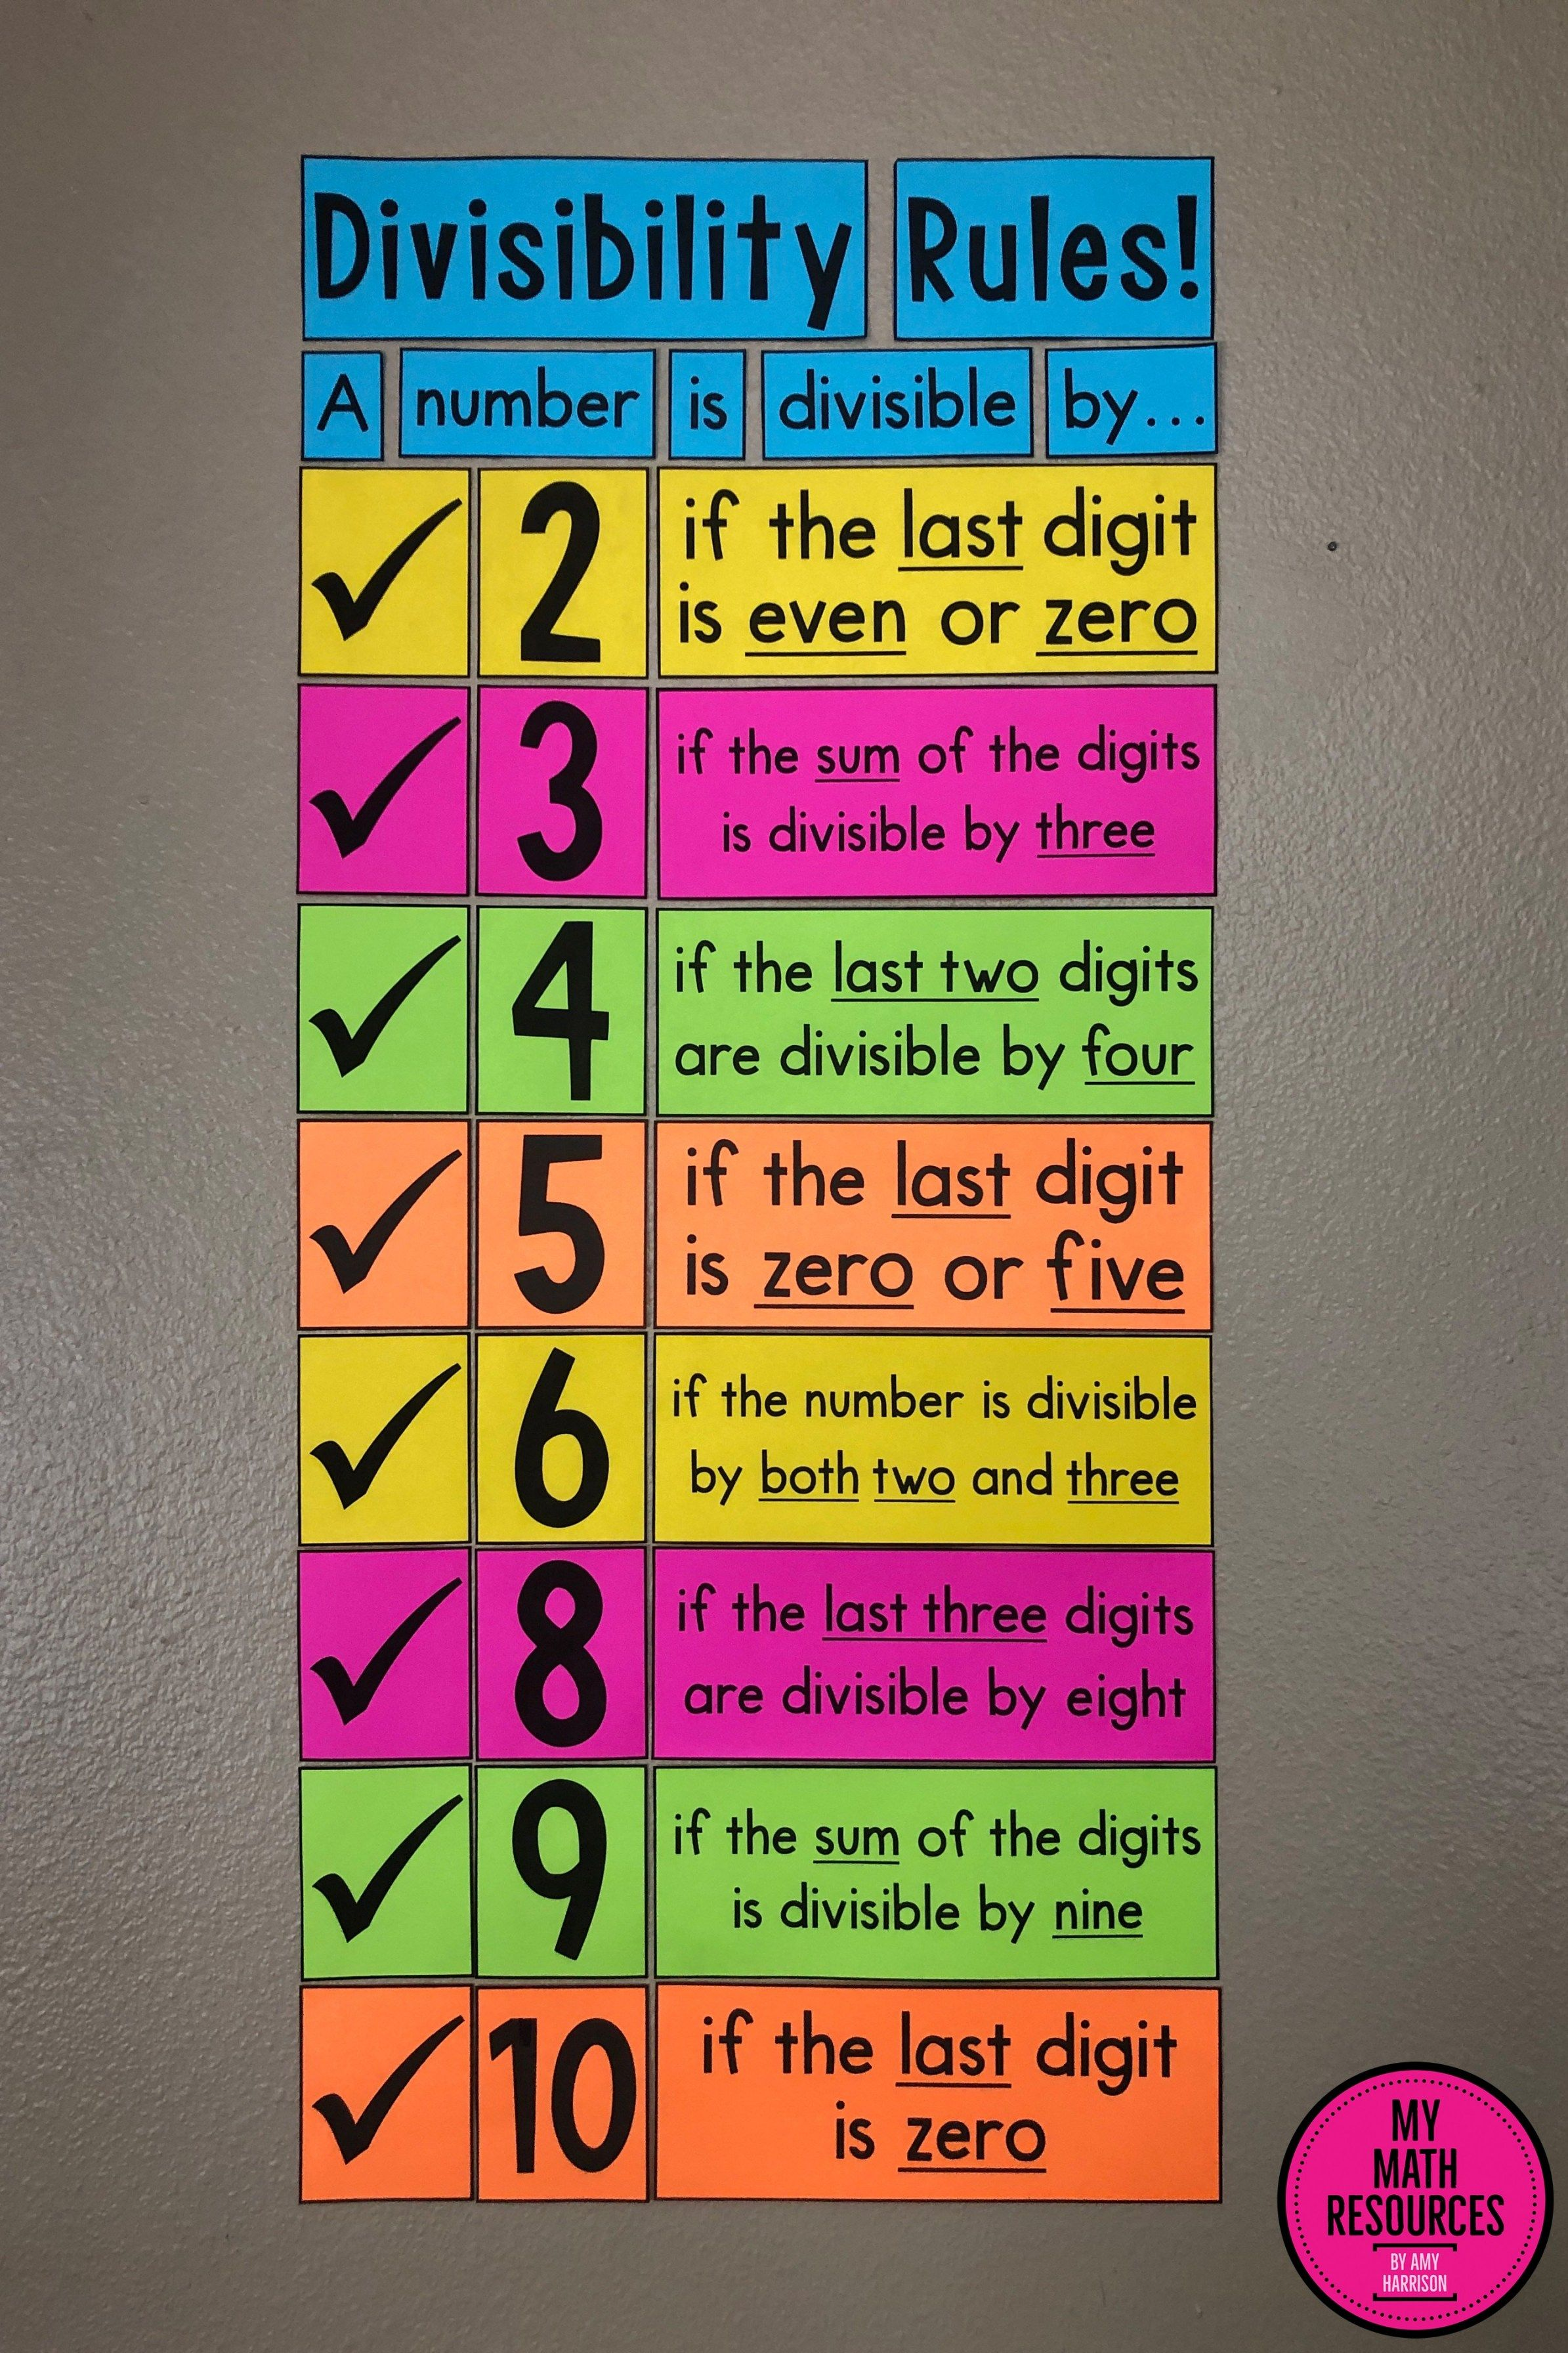 This Divisibility Rules Poster Is A Must Have For Any 4th 5th Or 6th Grade Classroom An Eye Ca Math Classroom Decorations Homeschool Math Divisibility Rules